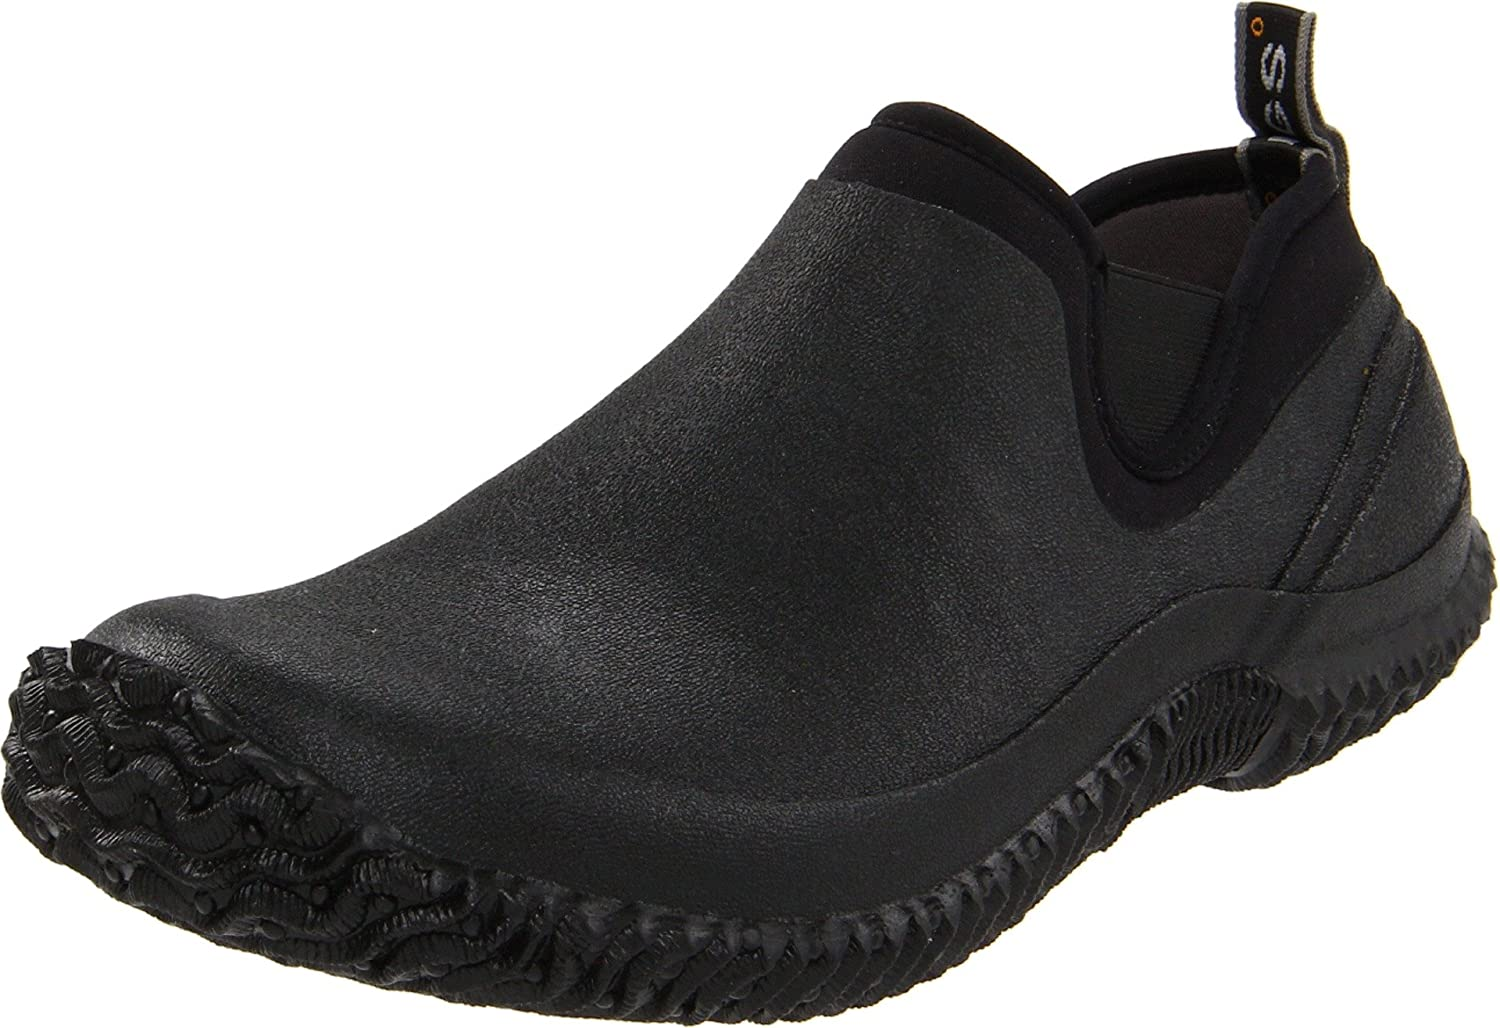 Bogs Men's Urban Walker Low Slip On Waterproof Rain Shoe